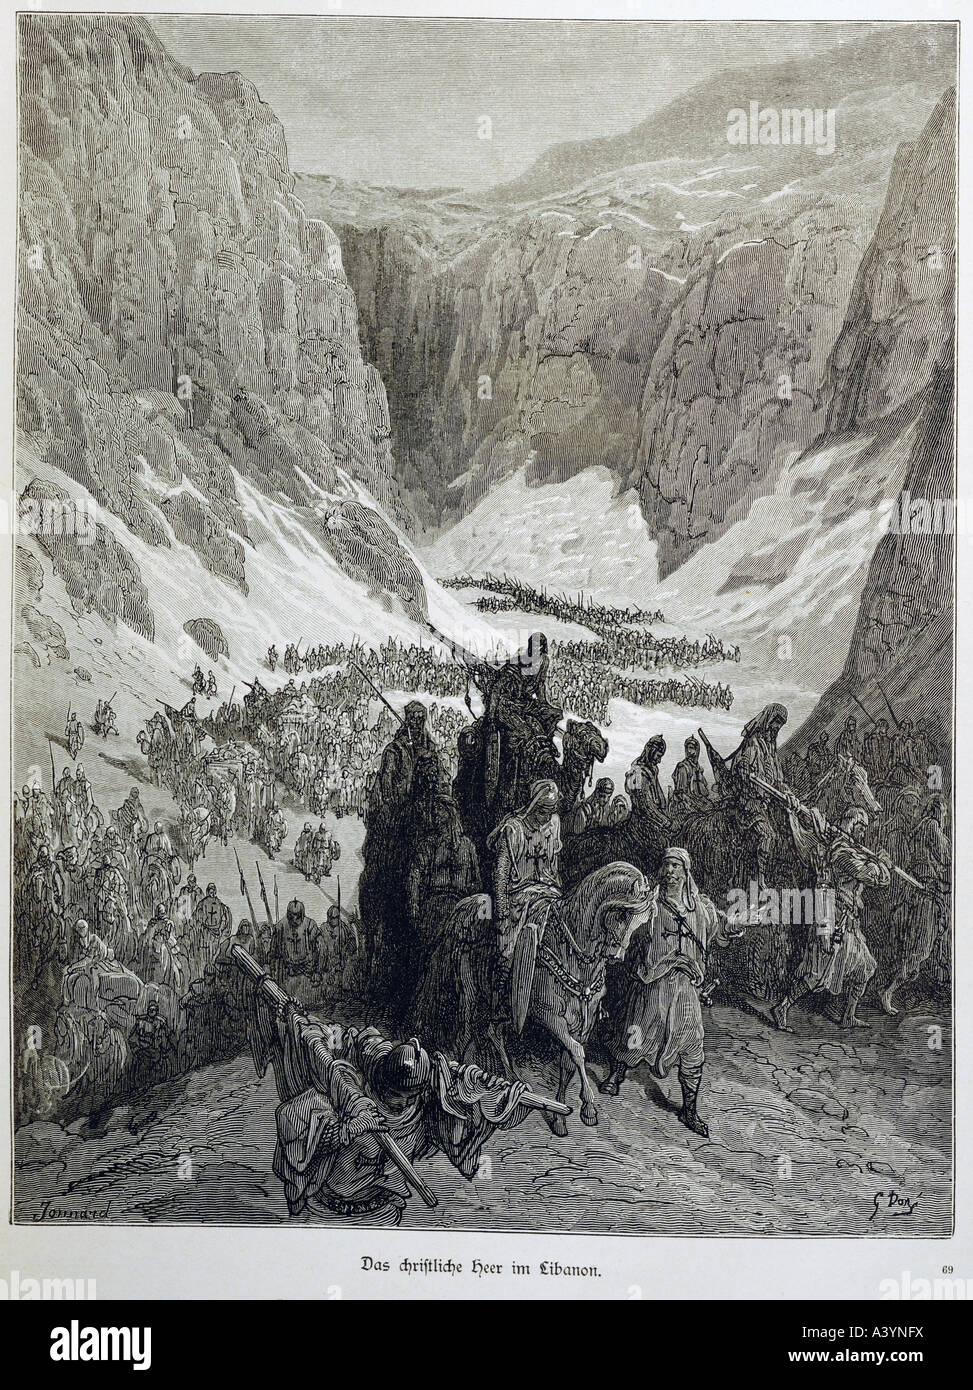 """middle ages, crusades, 3rd crusade, 1192 - 1198, crusade army at Lebanon  mountains, engraving, by Gustave Dore (1832 - 1883), illustration for """"the  ..."""